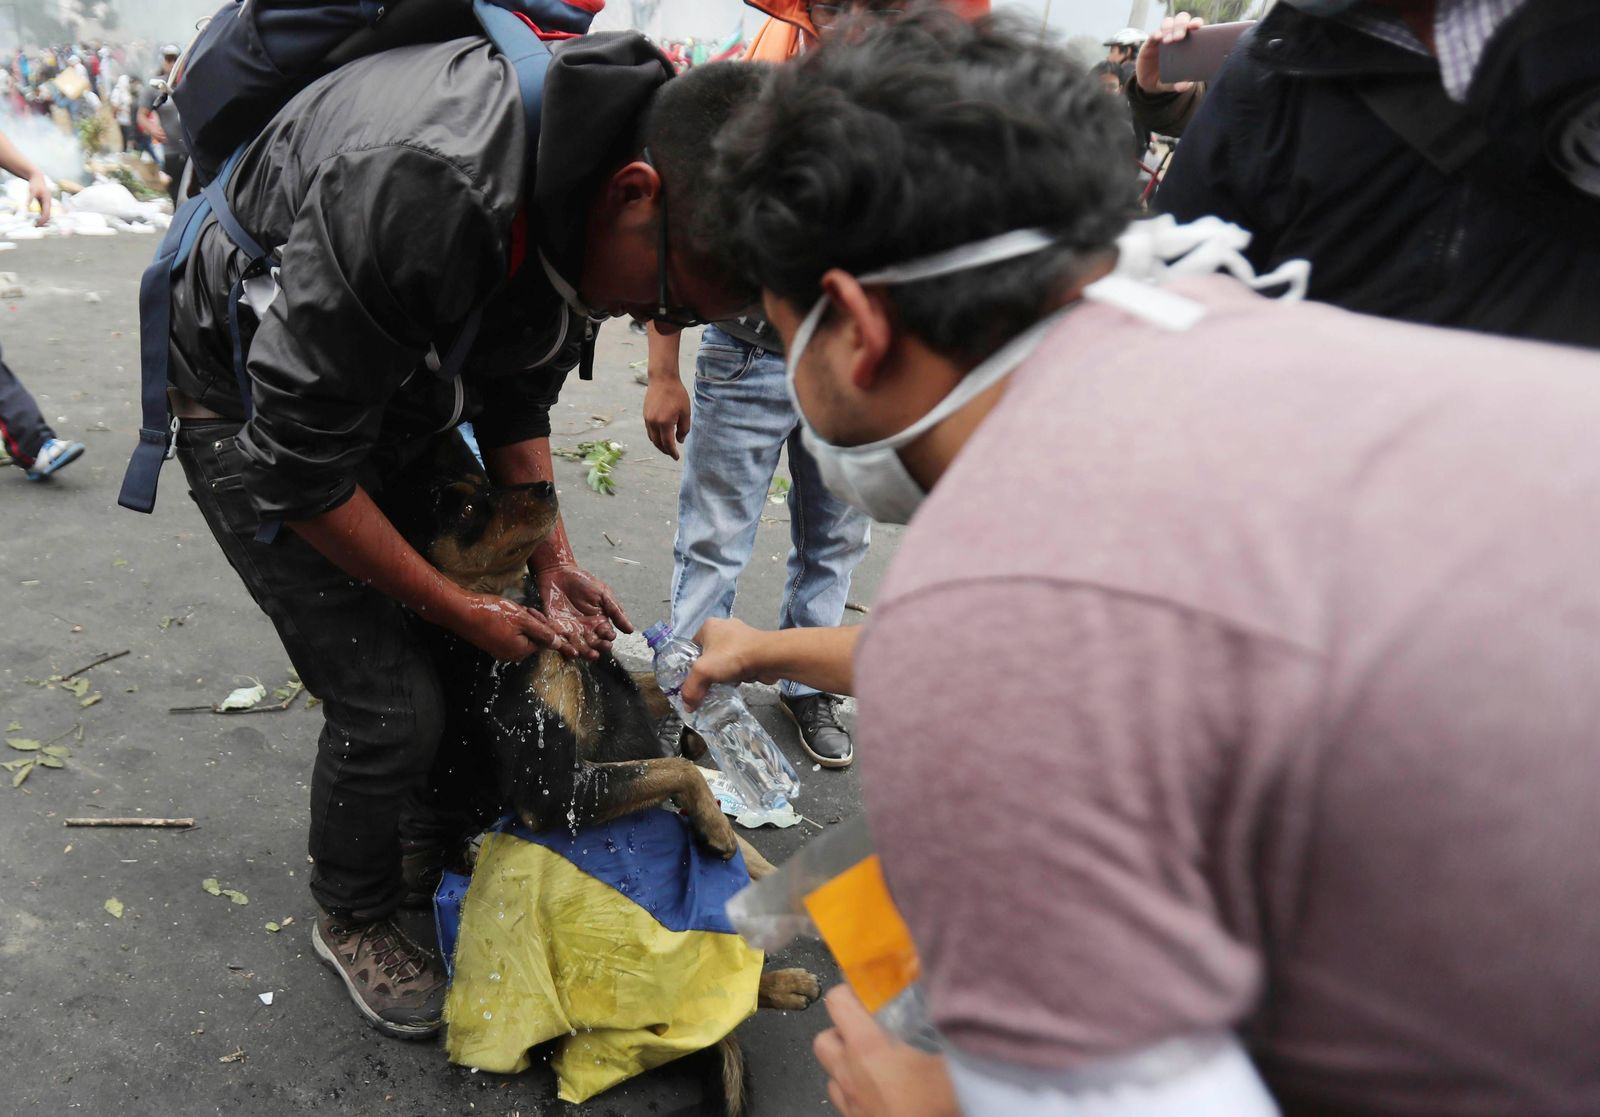 Anti-government demonstrators give assistance to a dog that was overcome by the effects of tear gas during clashes between anti-government demonstrators and the police, near the national assembly building in Quito, Ecuador, Saturday, Oct. 12, 2019. (AP Photo/Dolores Ochoa)